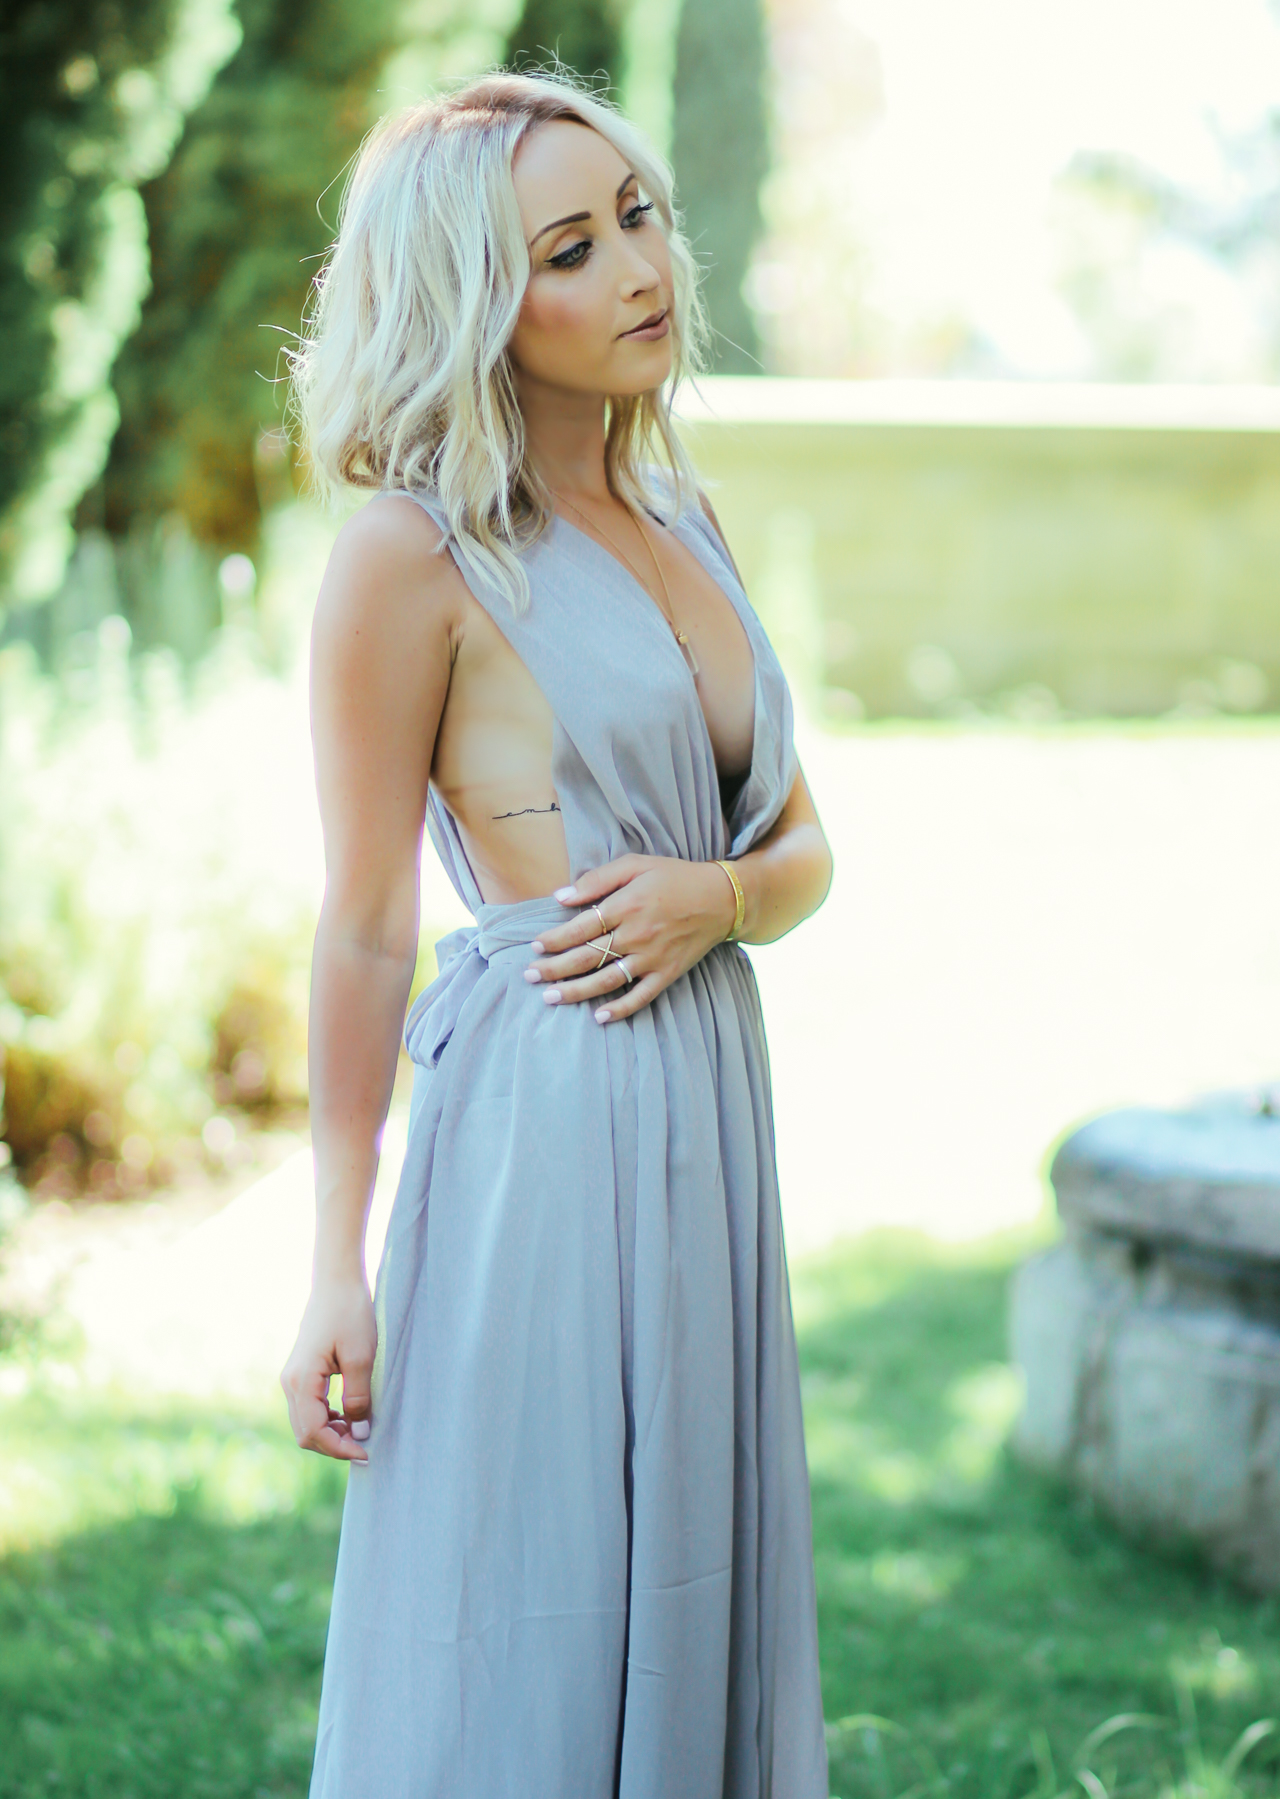 Low cut maxi dress | Styledbyblondie.com